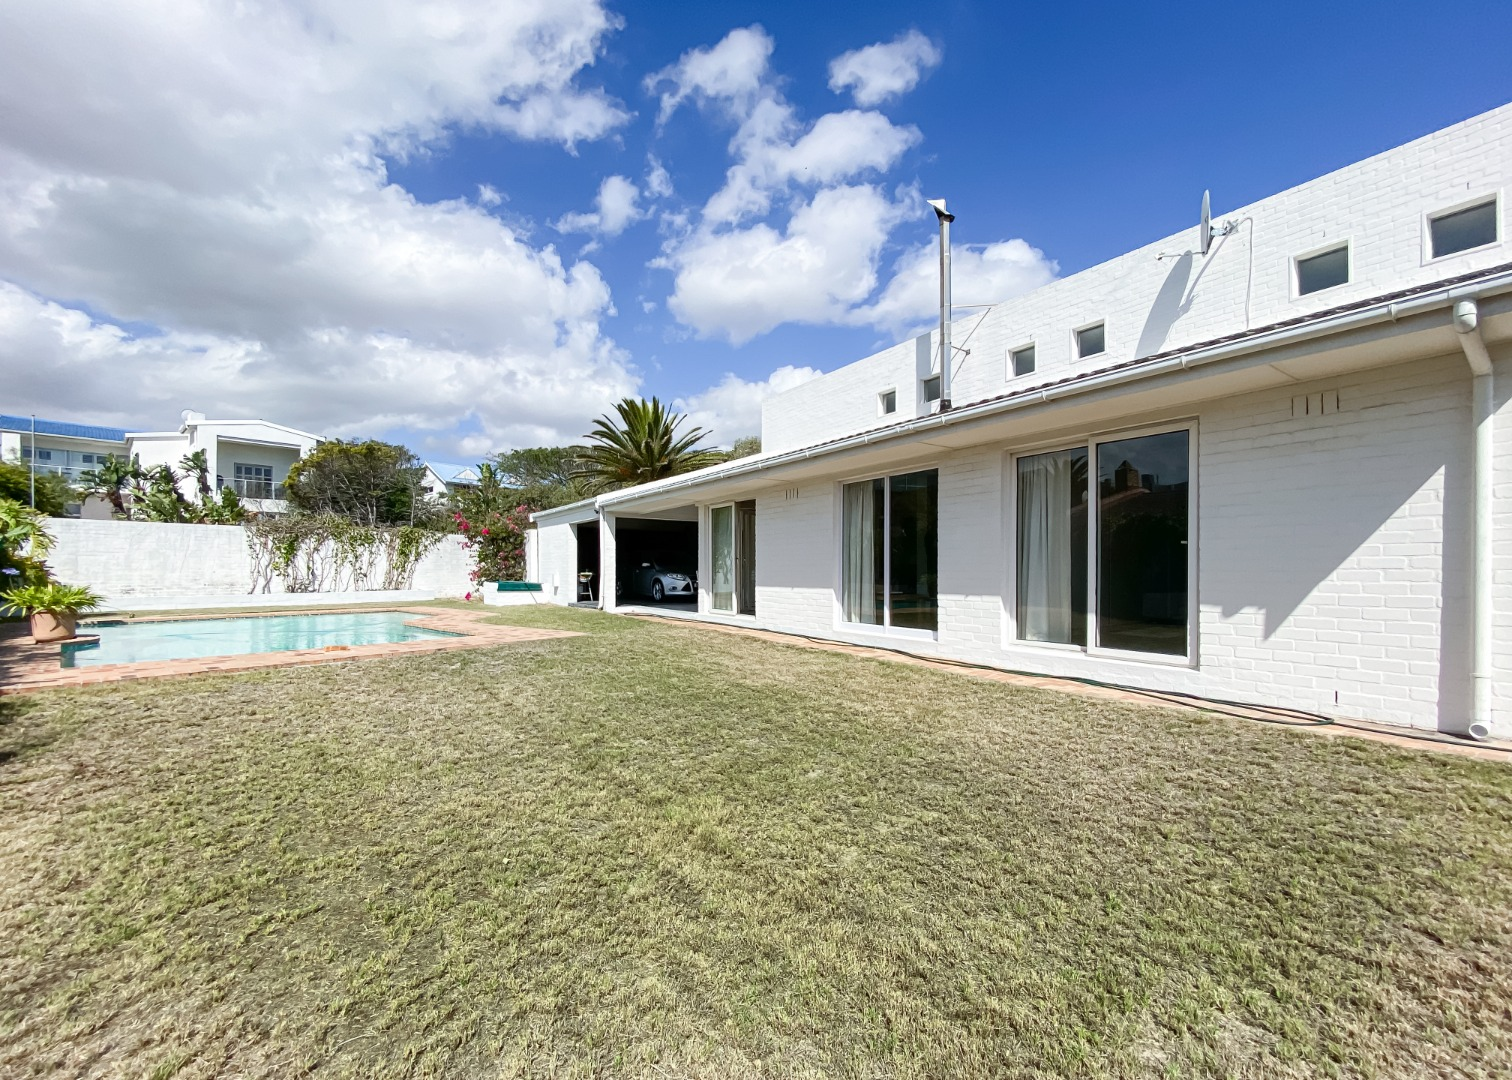 3 Bedroom House For Sale in Van Riebeeckstrand